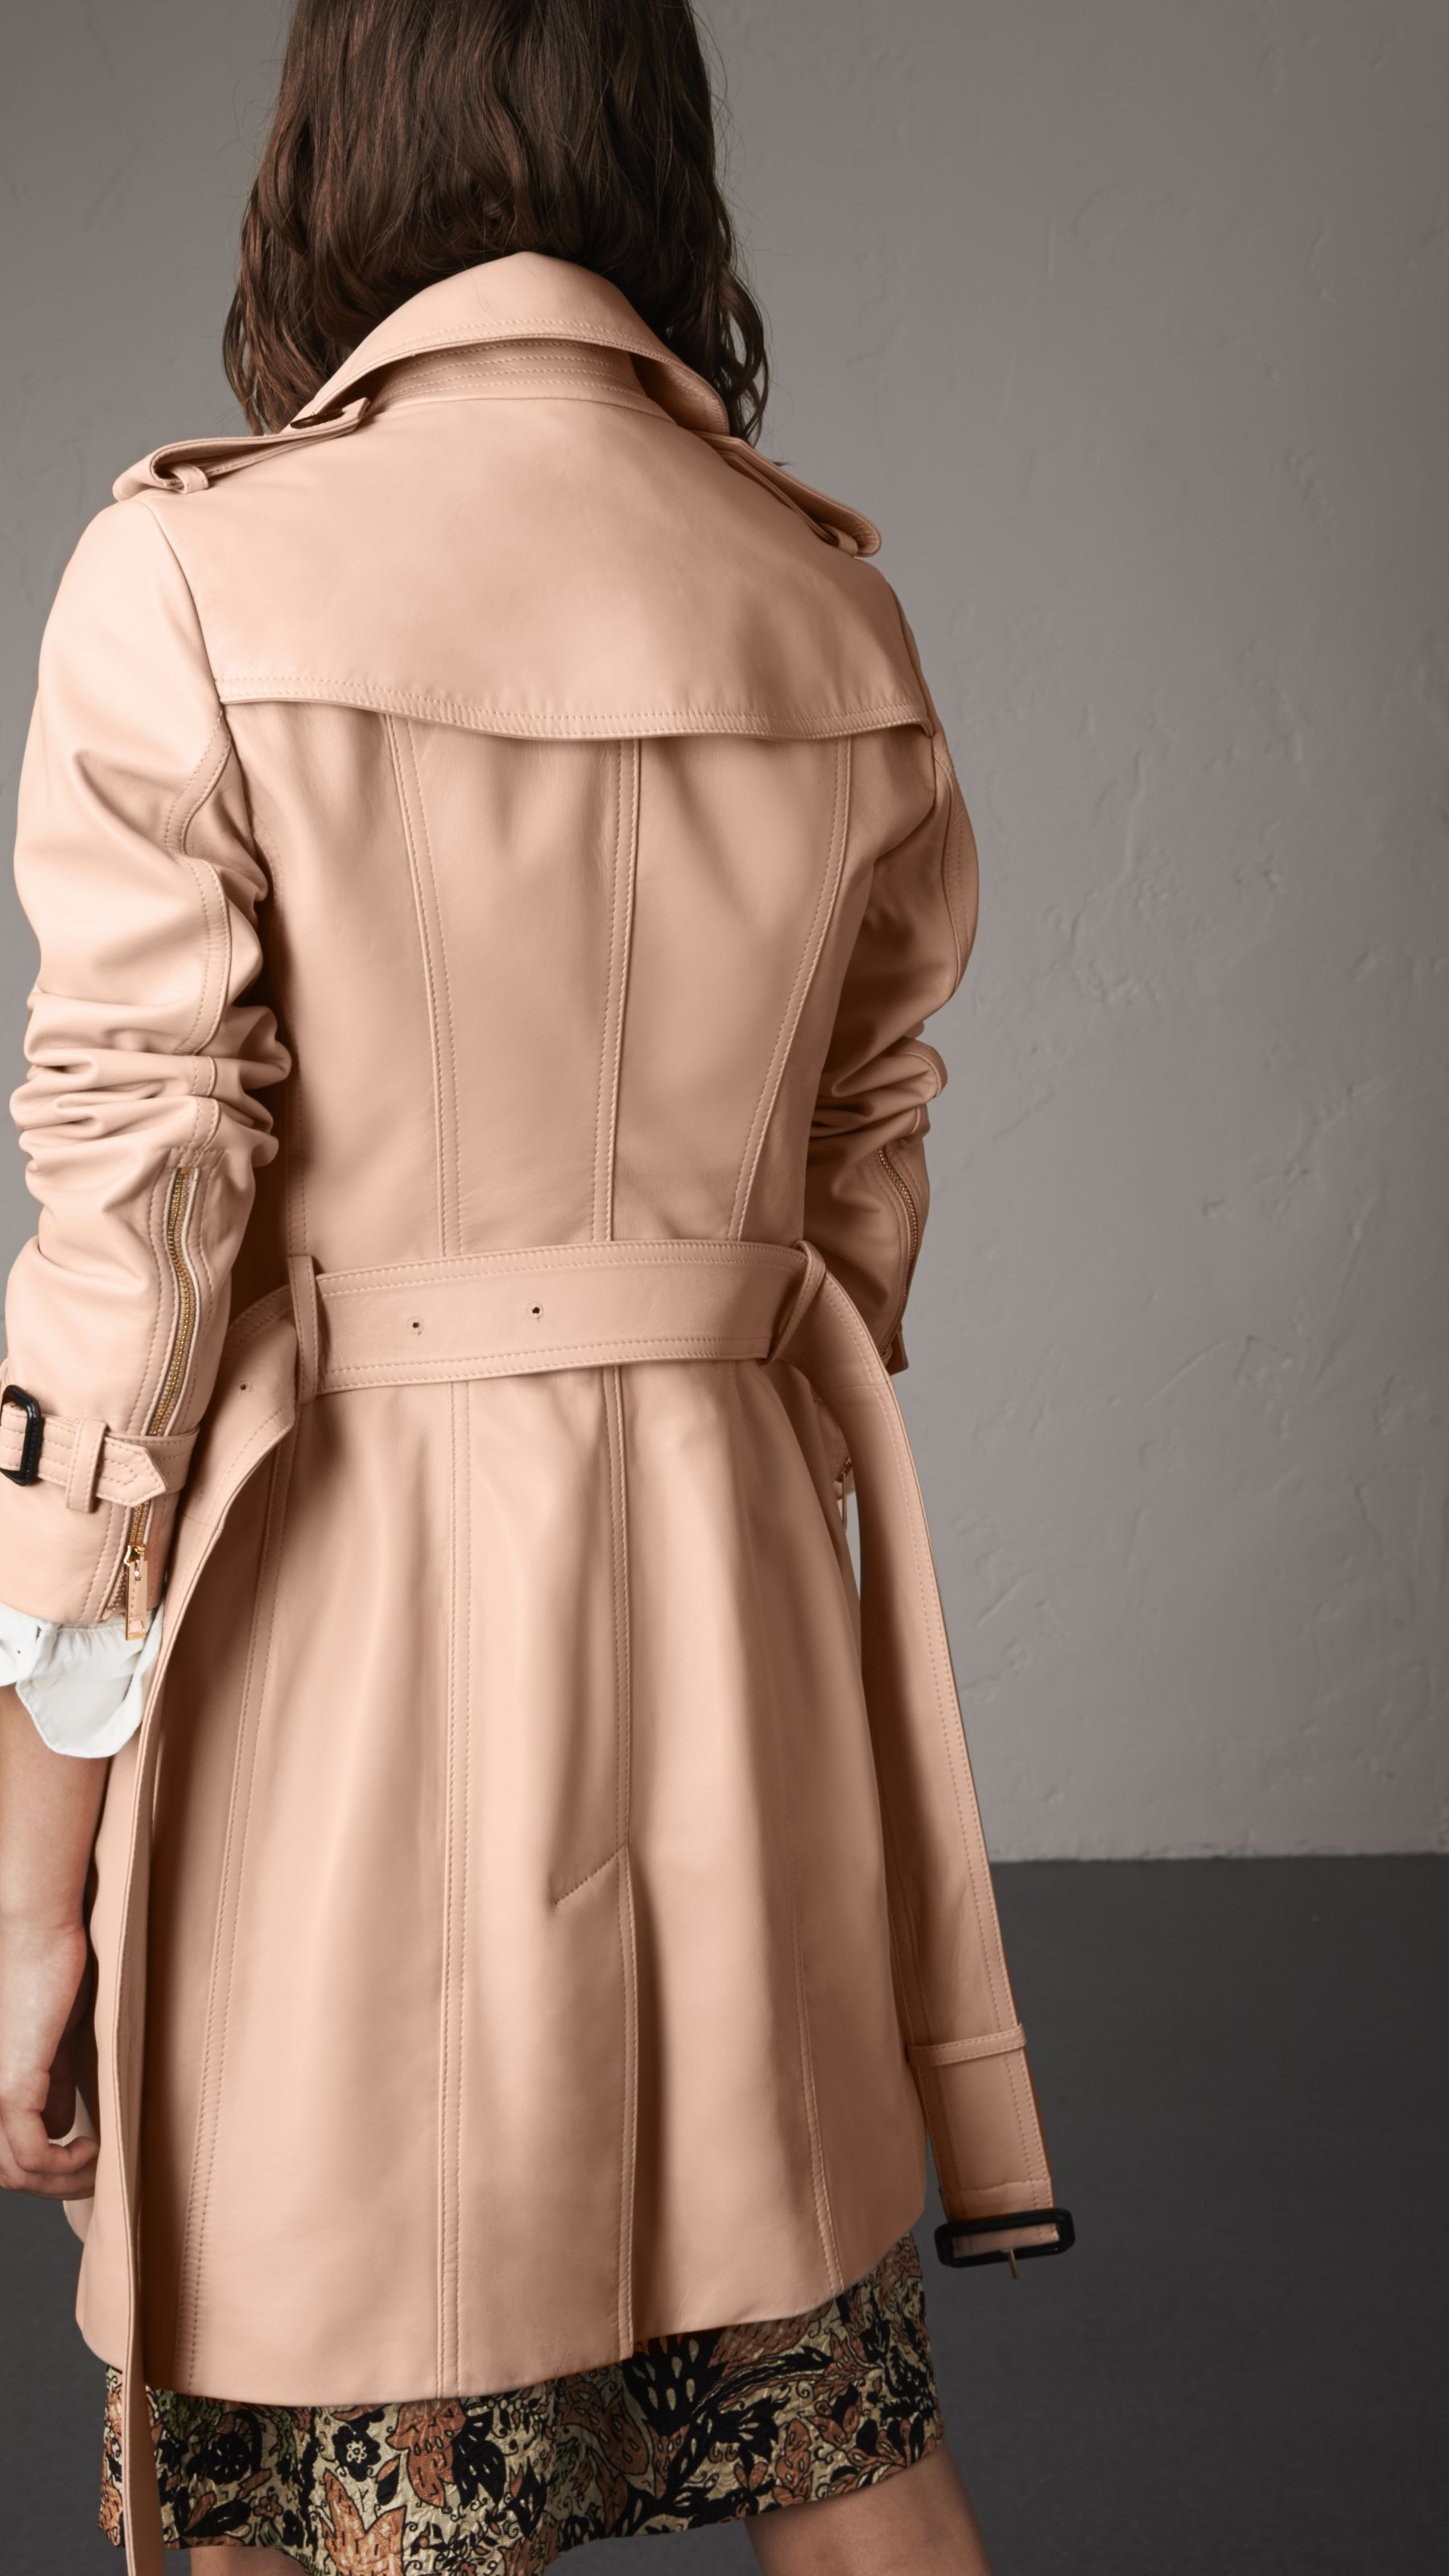 Nude women in leather trench coats